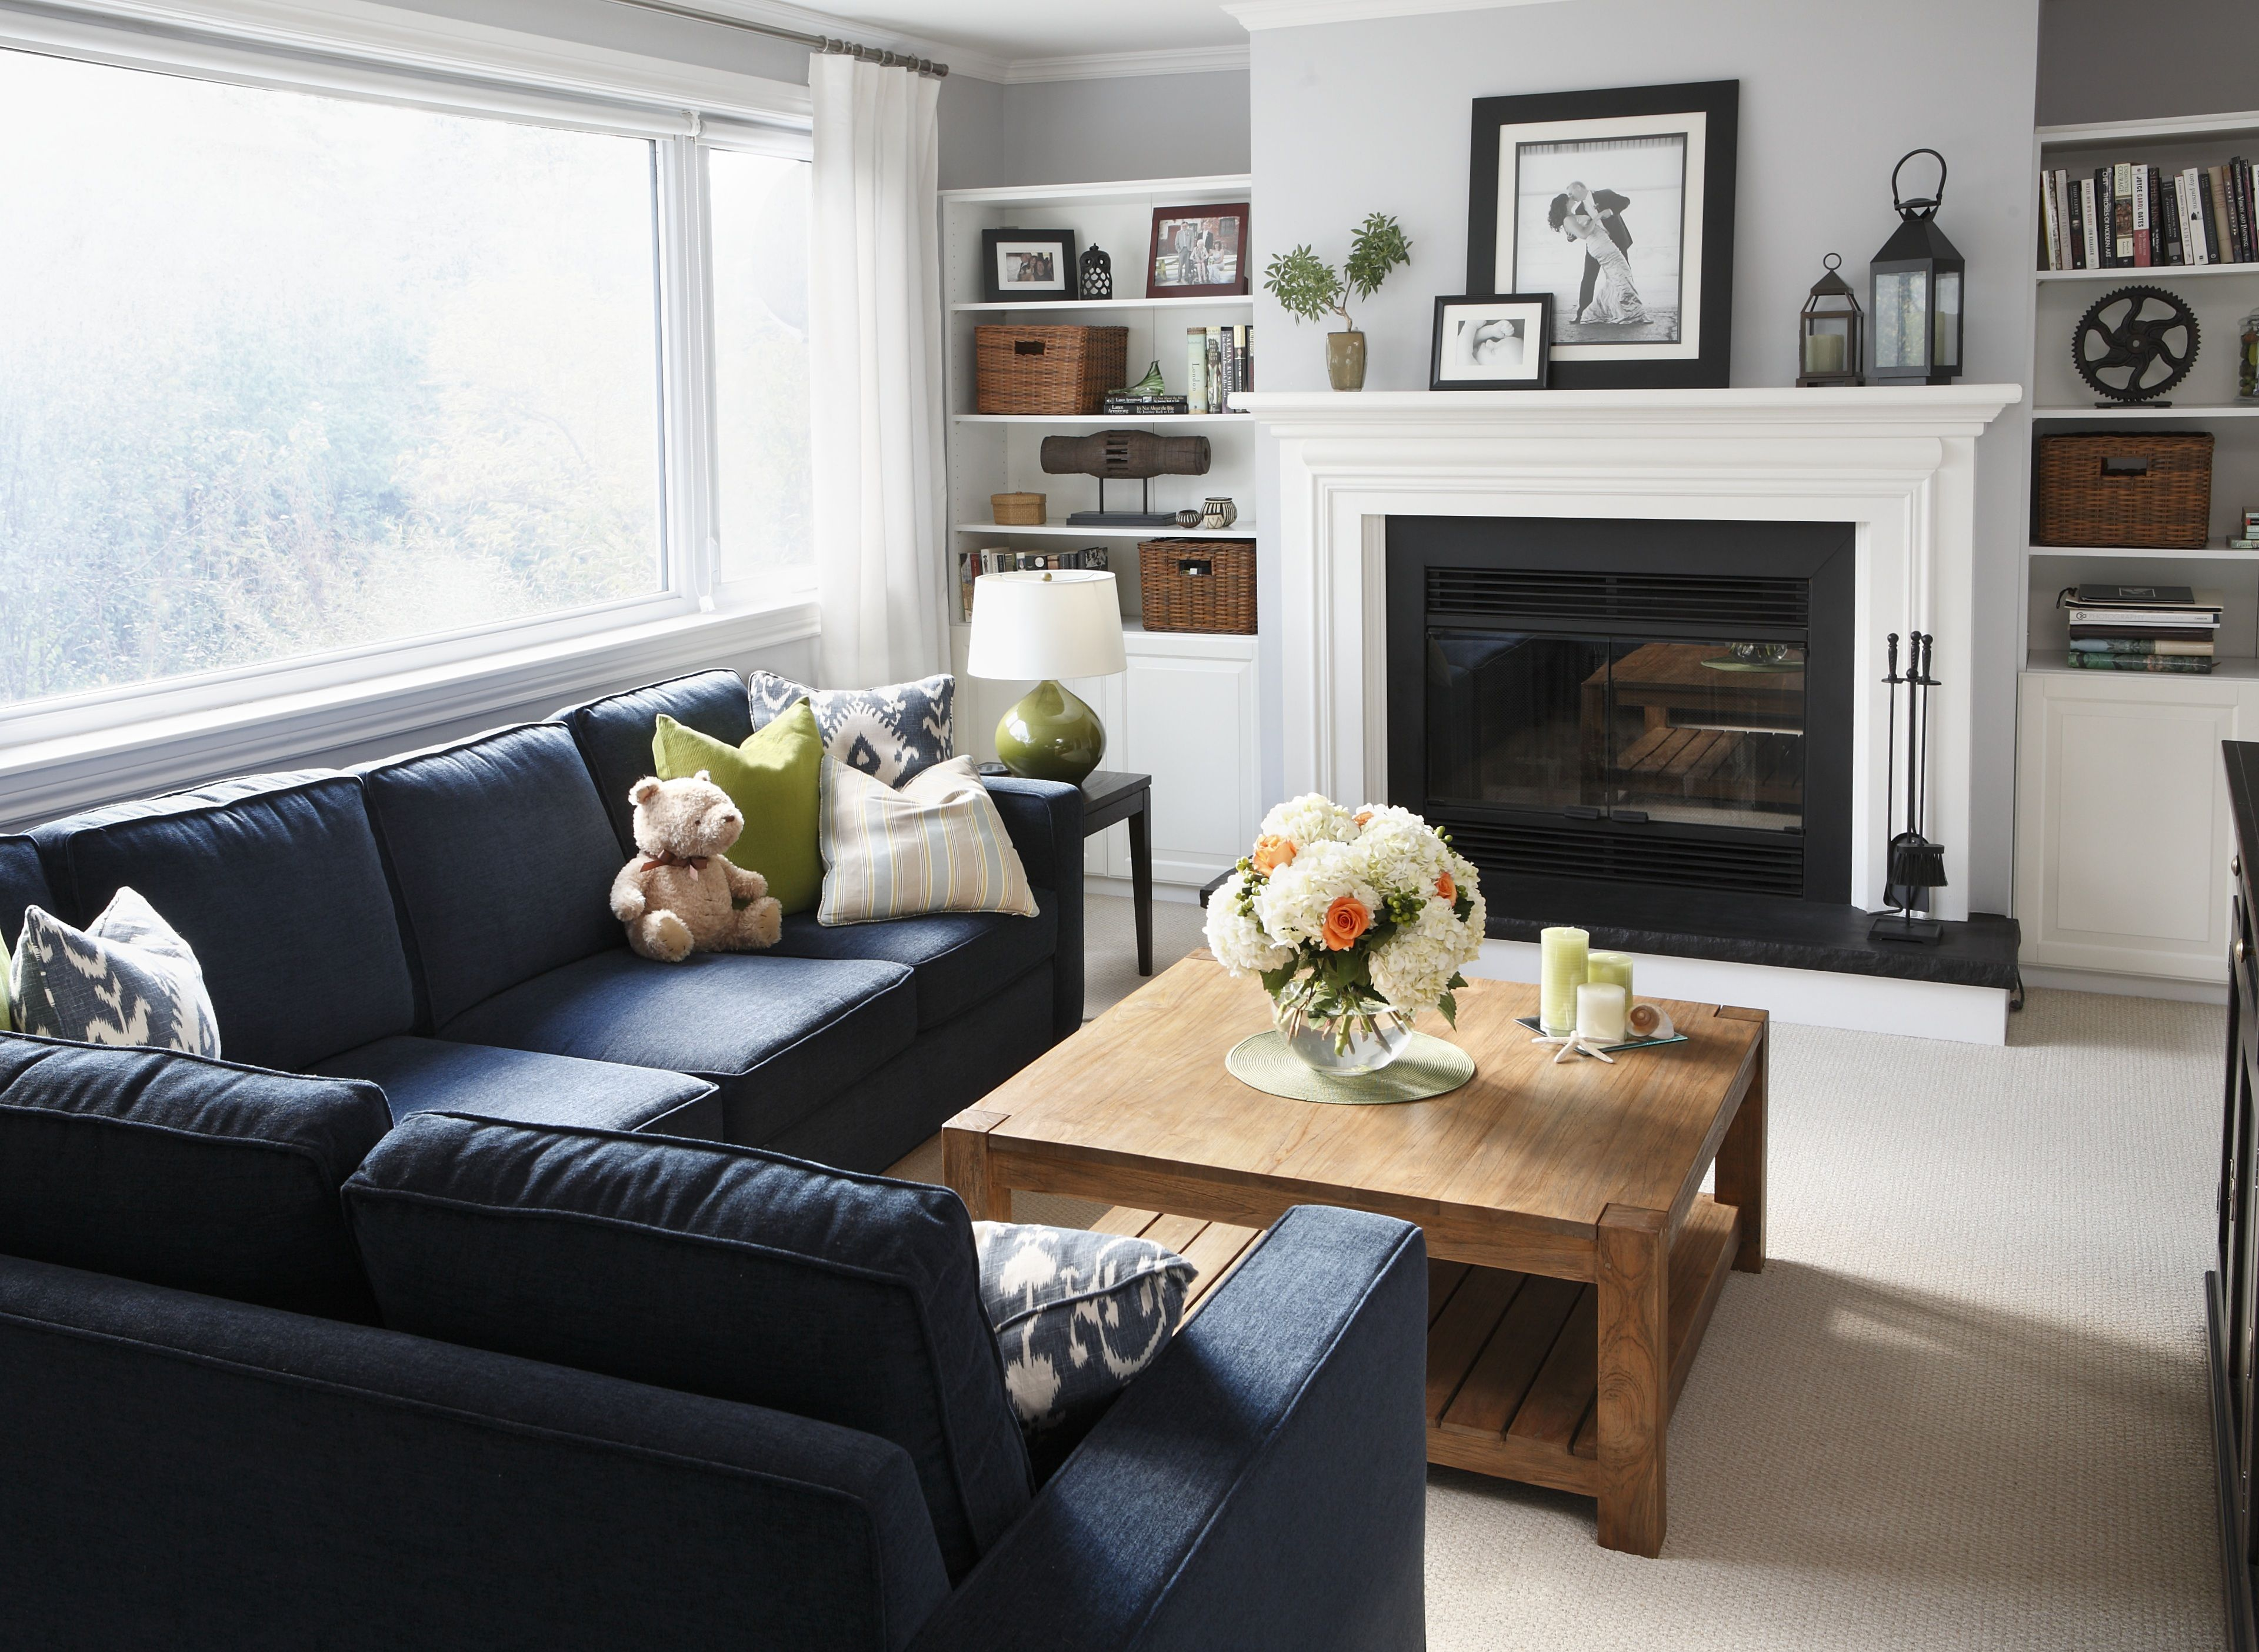 Refined By Design Interior Design Toronto Family Room With Blue Chenille Sectional Sof Sectional Sofas Living Room Blue Couch Living Room Livingroom Layout